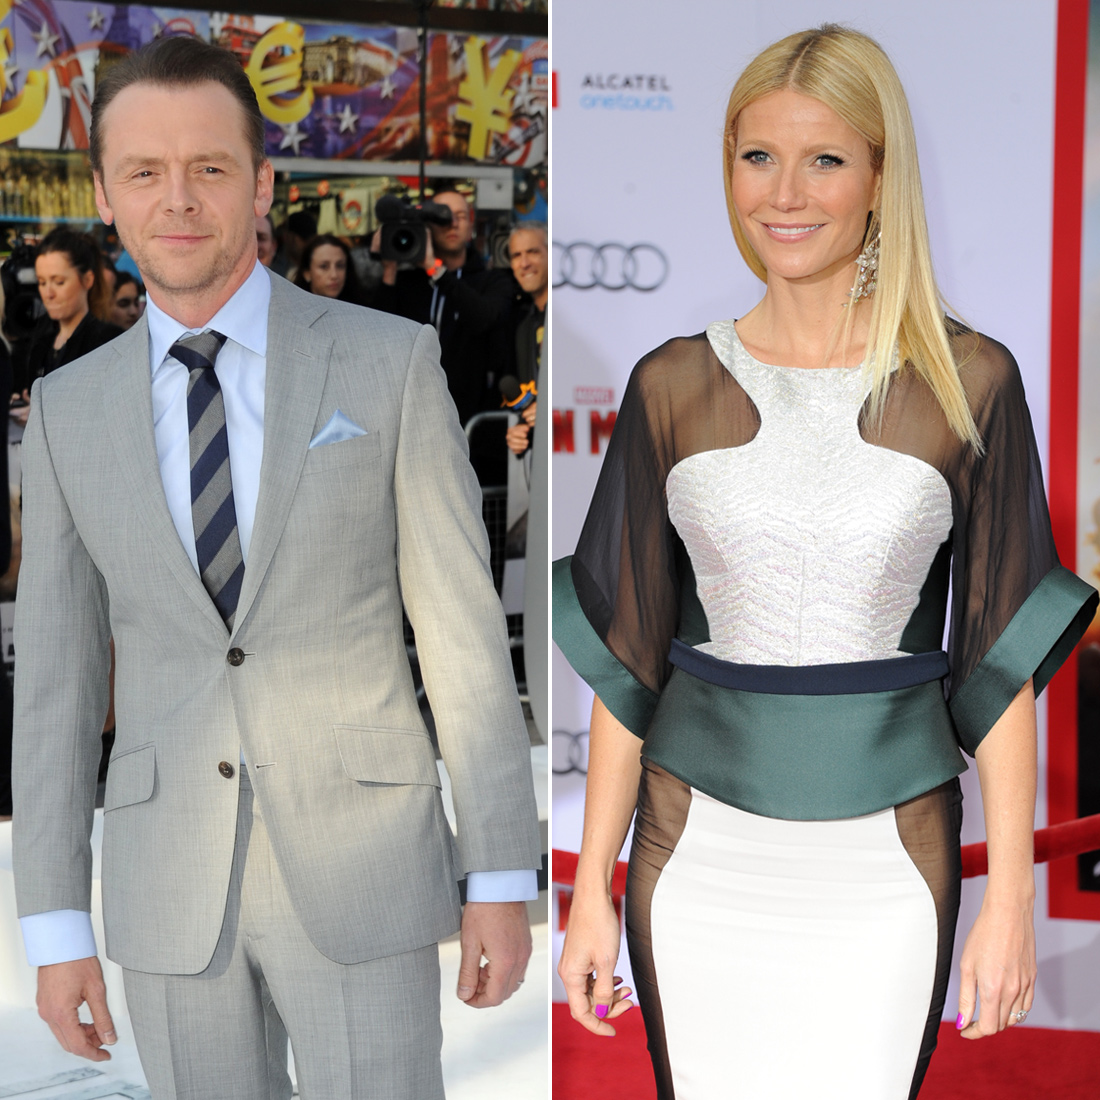 British actor Simon Pegg is the godfather to Gwyneth Paltrow and Chris Martin's 9-year old daughter, Apple. Gwyneth's got a famous godfather of her own, and his name is . . .